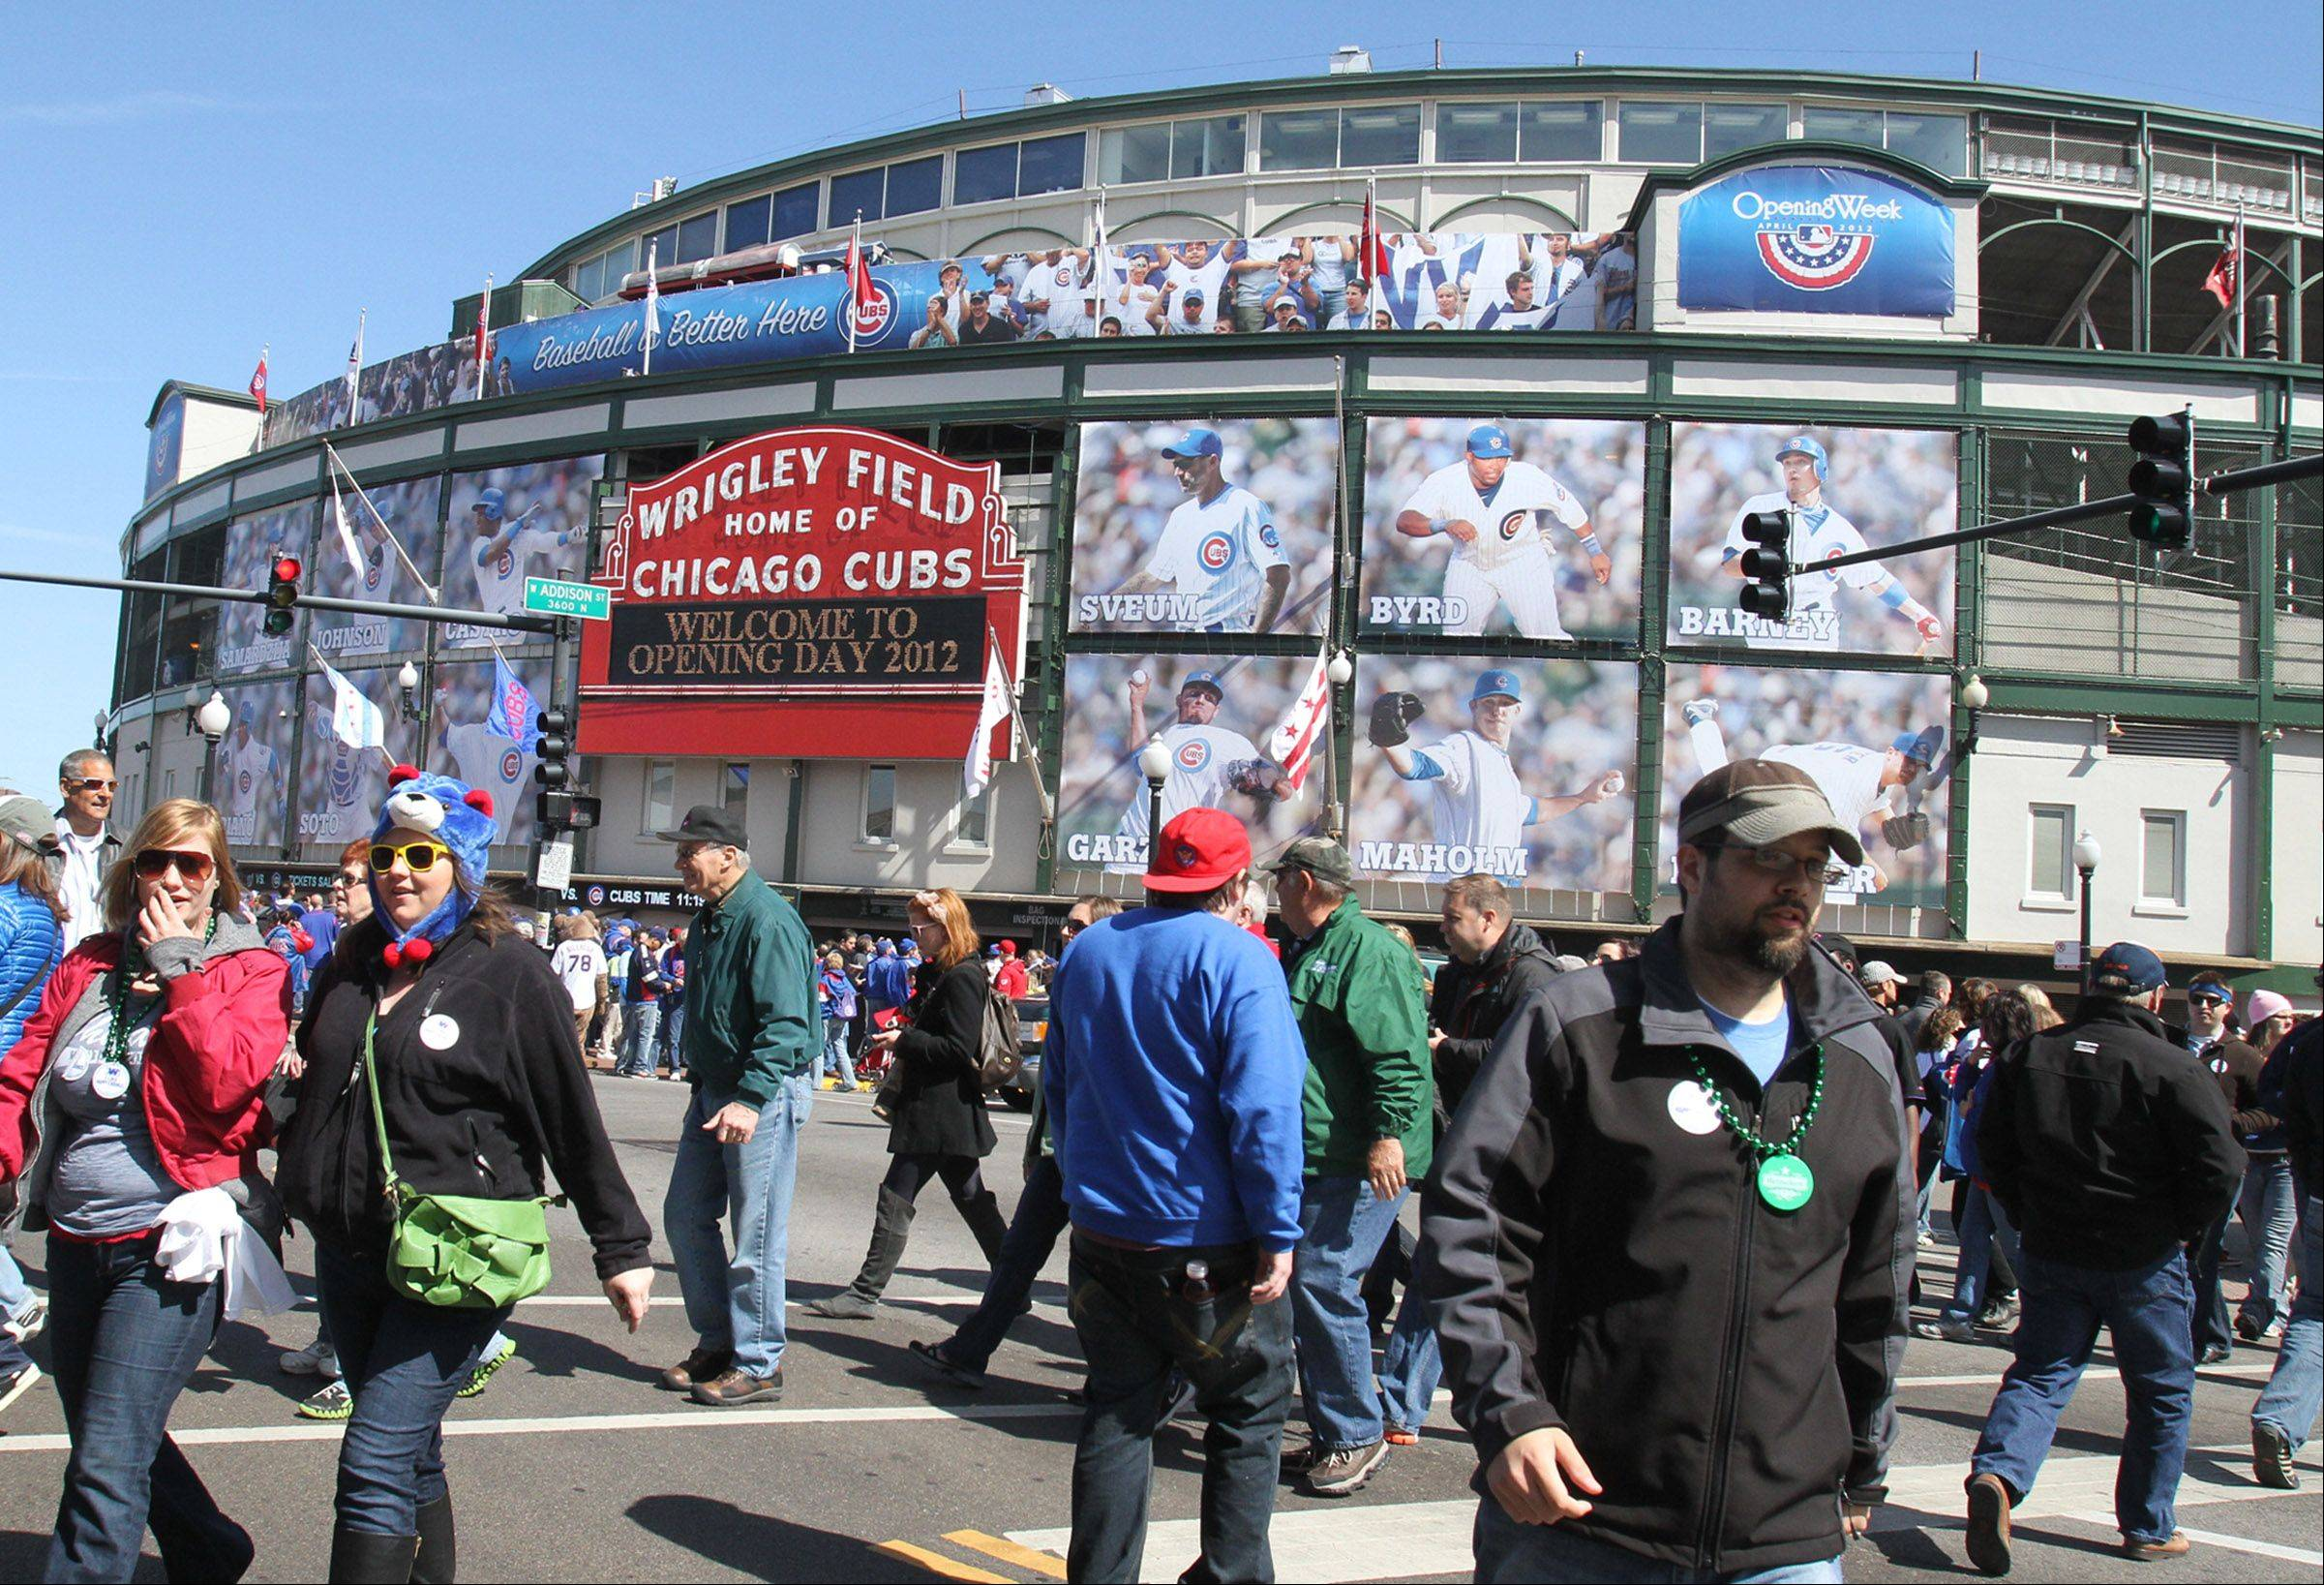 Fans were in front Wrigley Field early for opening day.